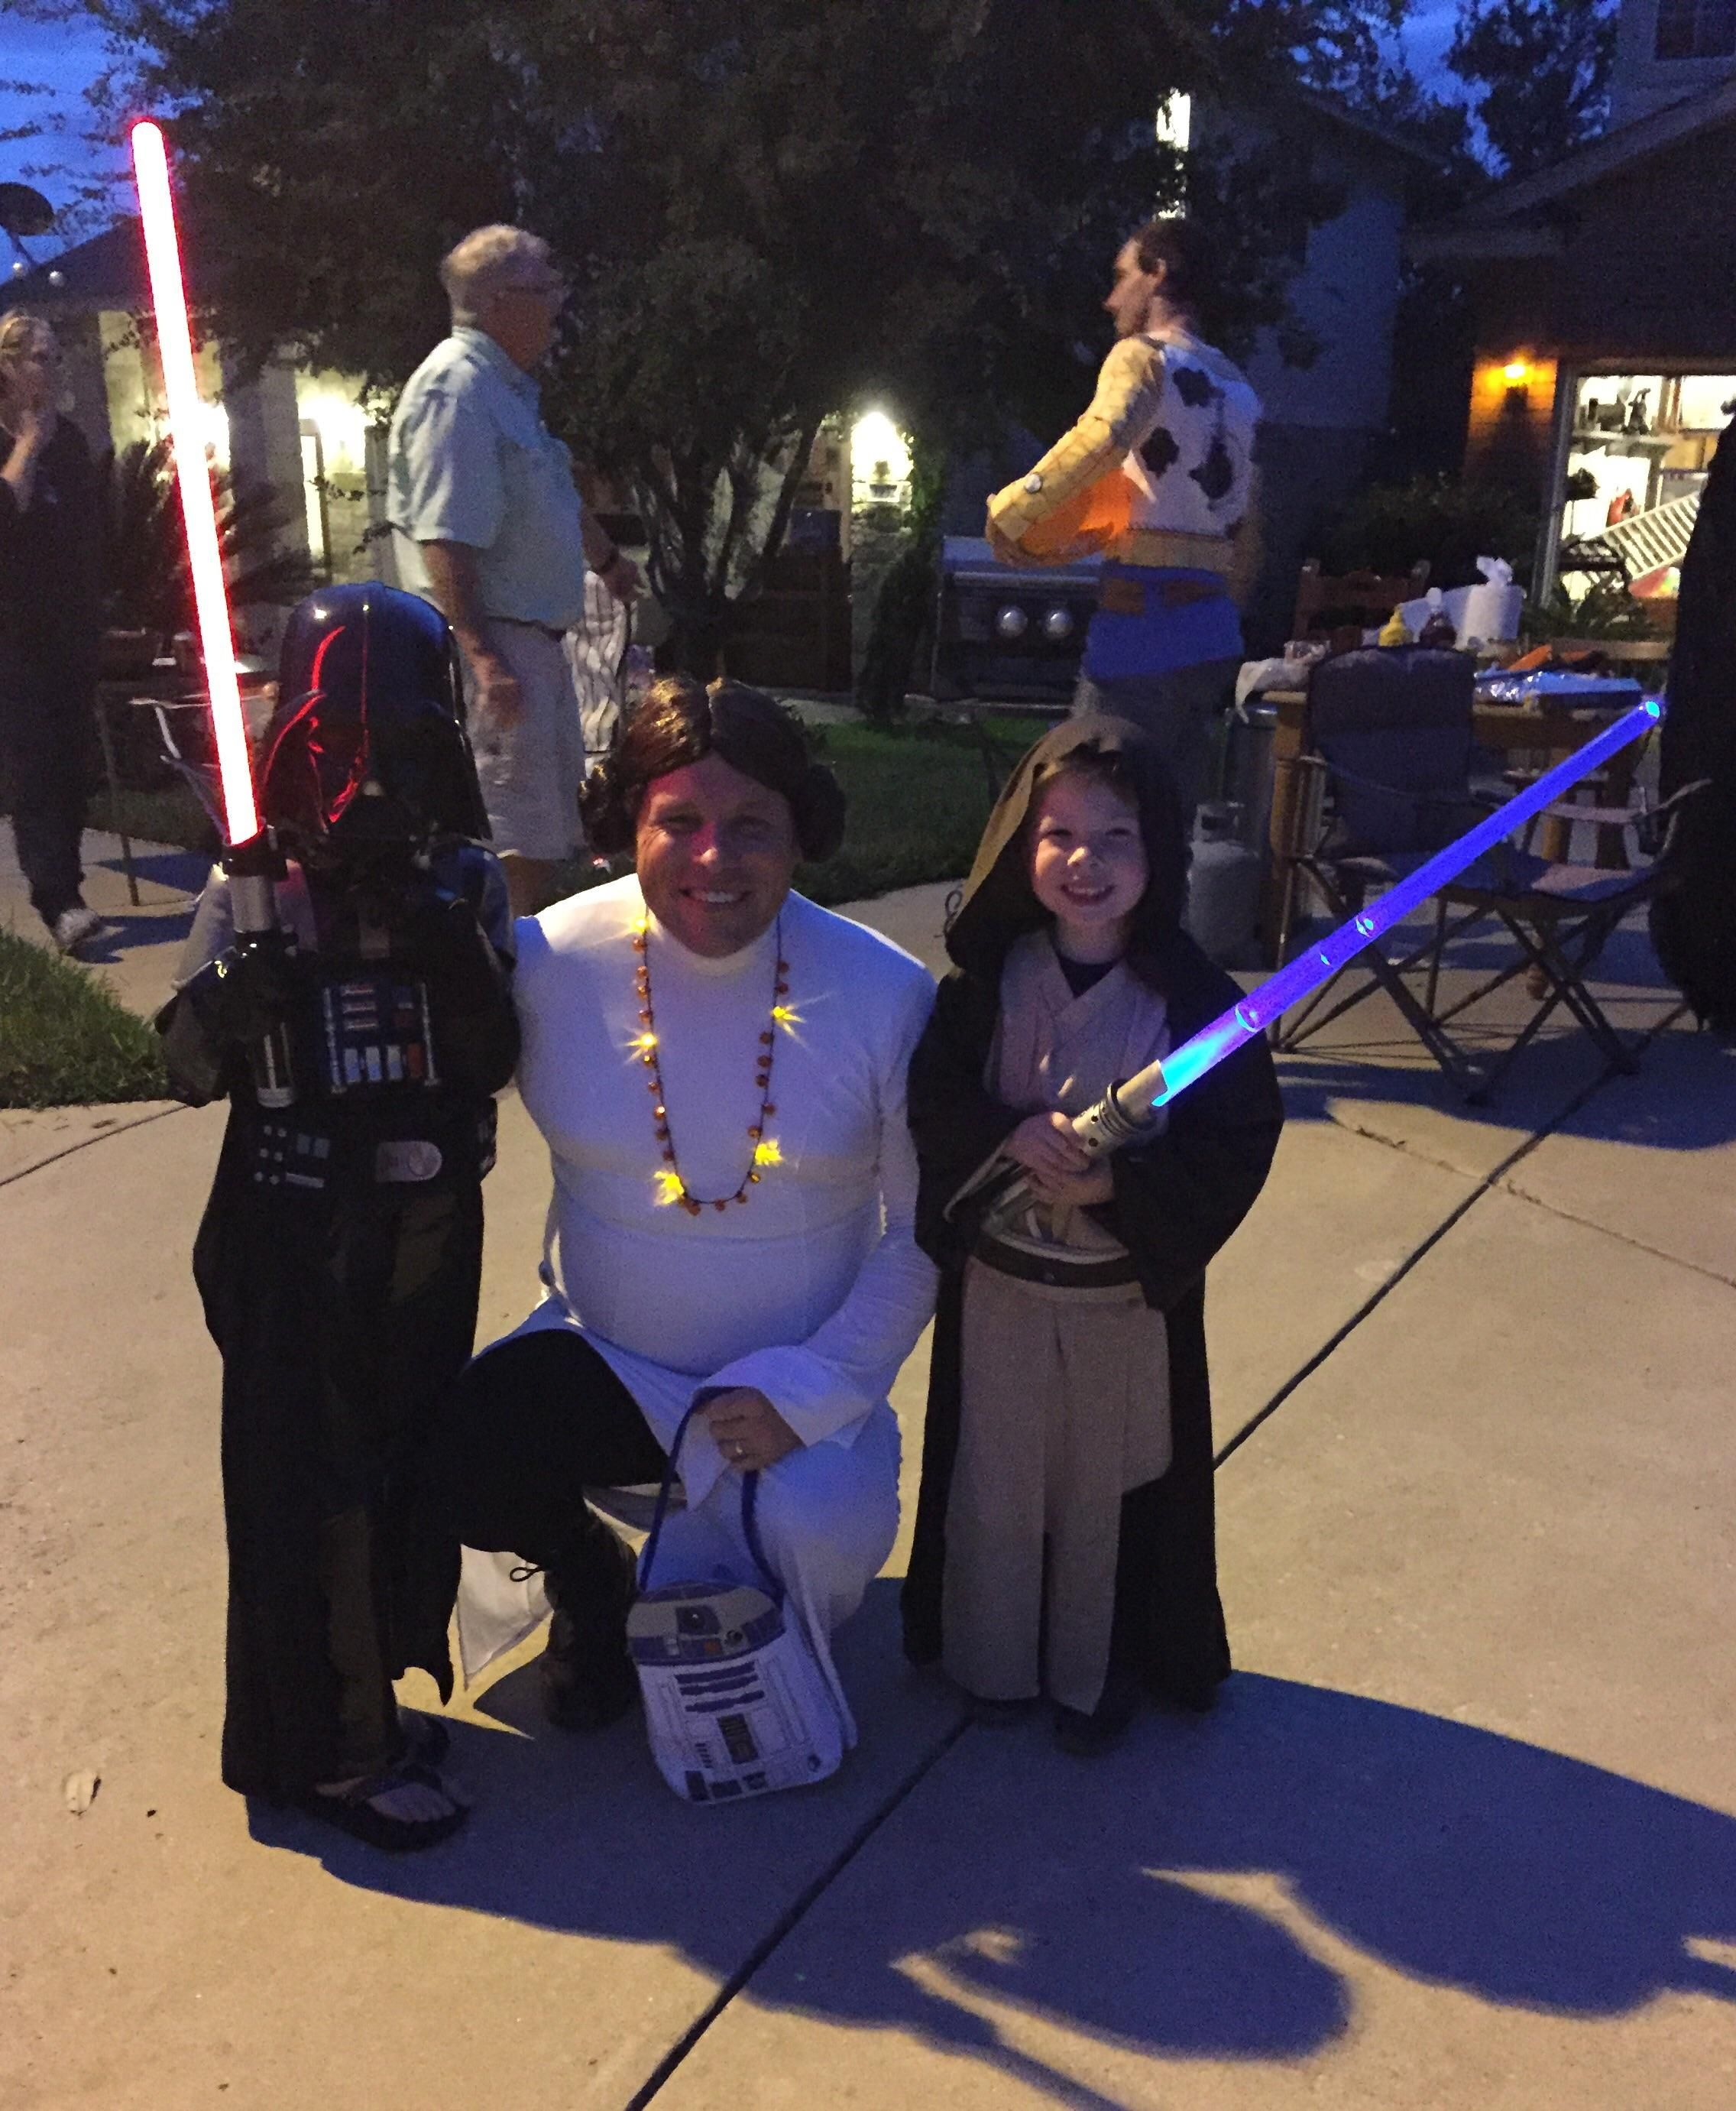 When your wife got sick on Halloween but your kids really want princess Leia to go with them